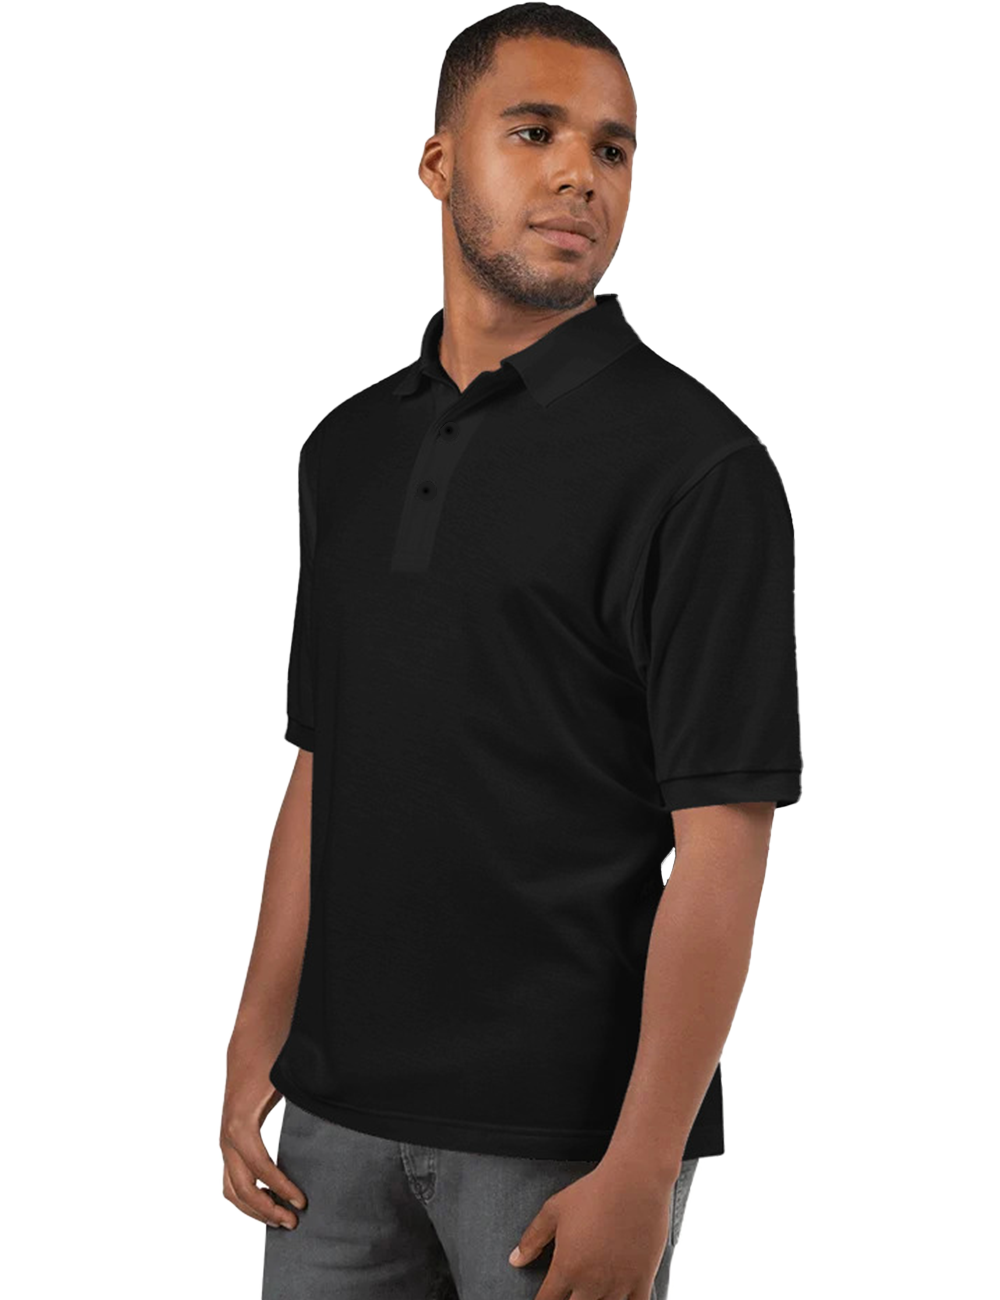 Premium Relaxed Fit Silky Polo Shirt - Mercating | Business solutions to achieve more with less